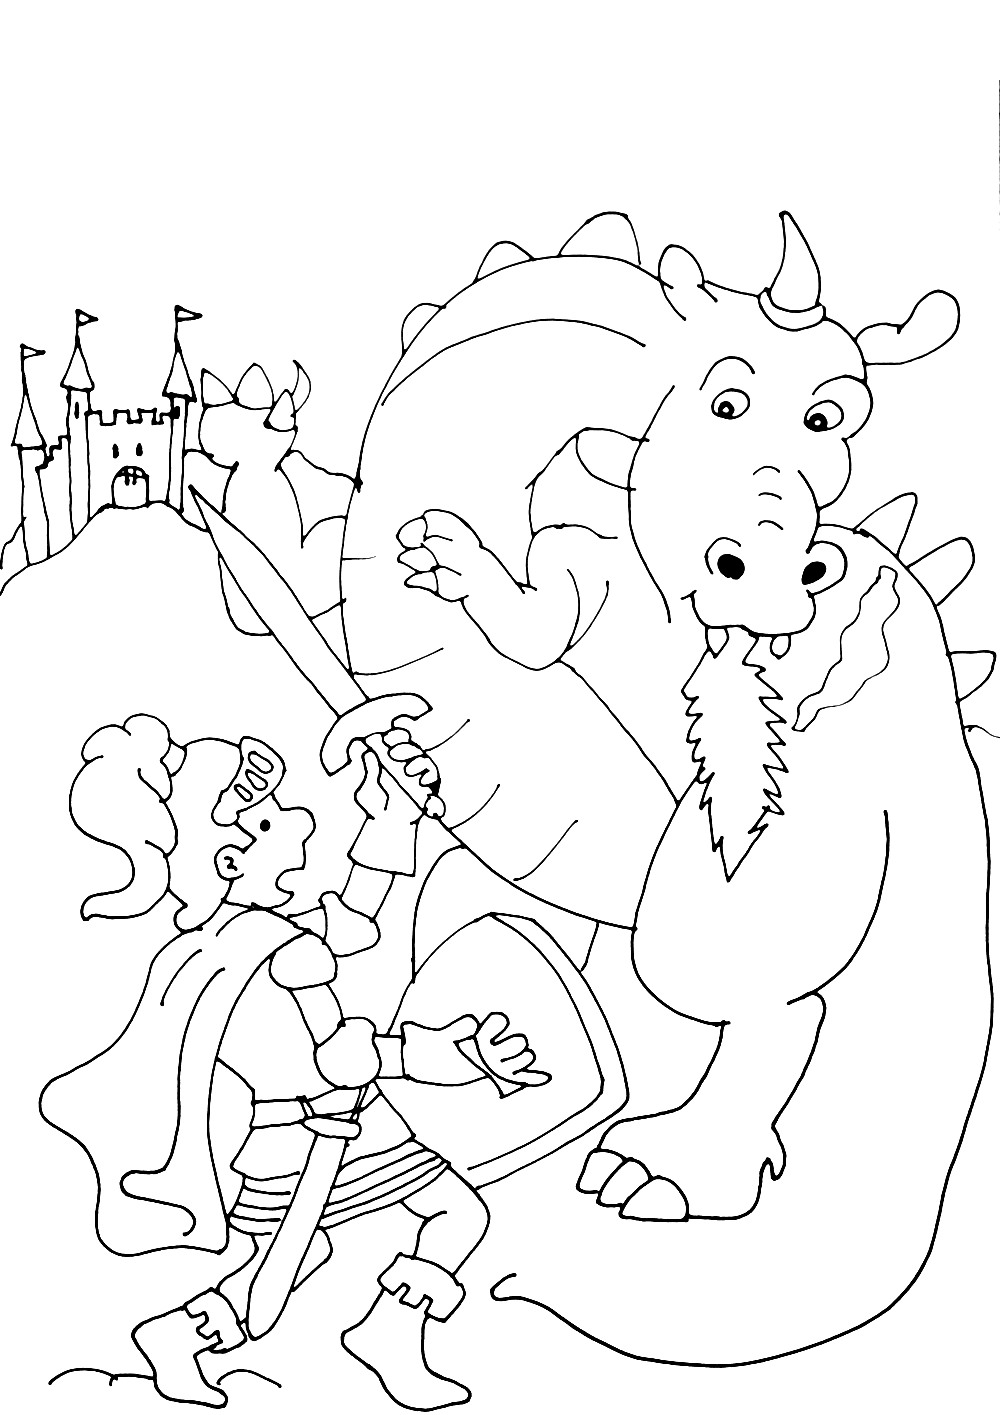 Chevaliers dragons 1 coloriage chevaliers et de dragons coloriages pour enfants - Chevalier a colorier ...